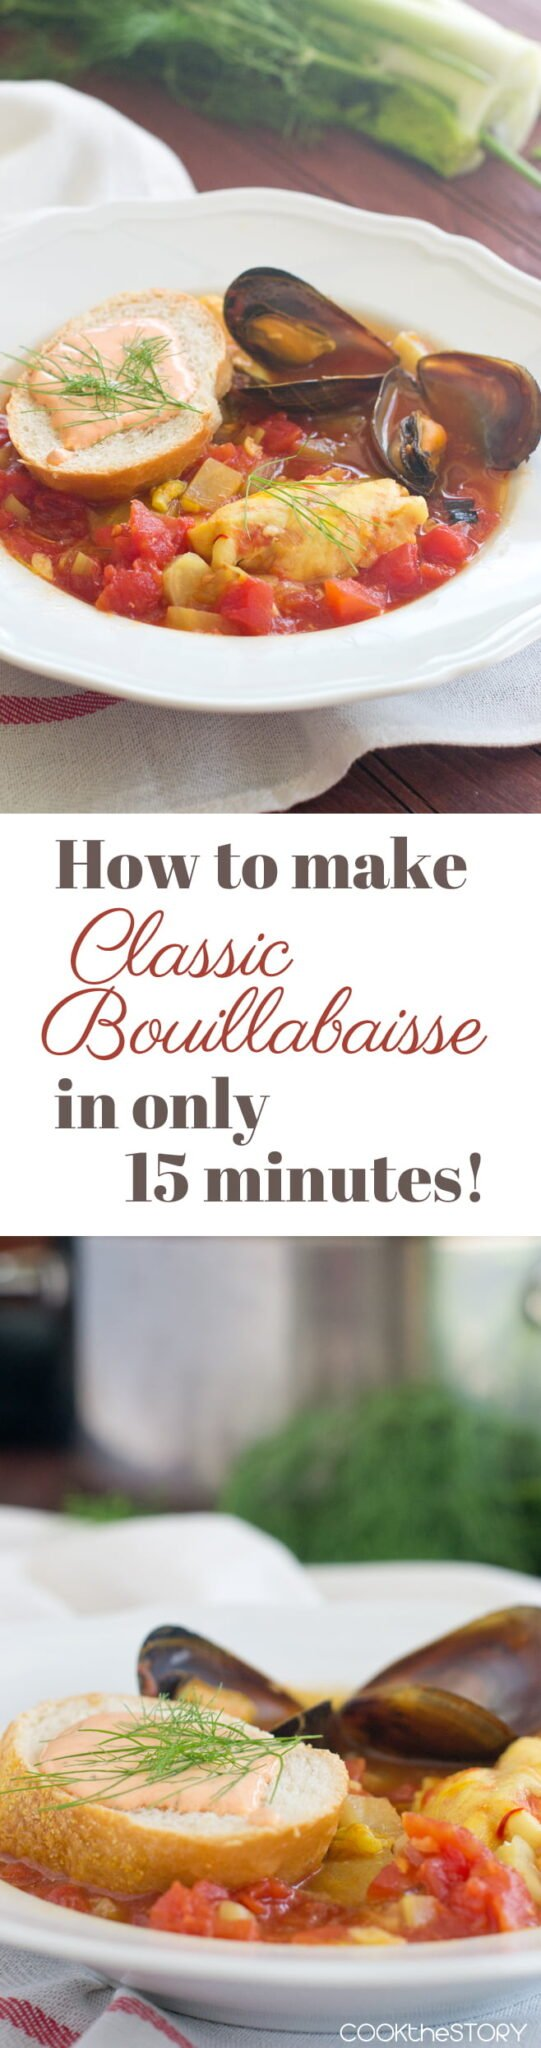 Easy recipes for bouillabaisse